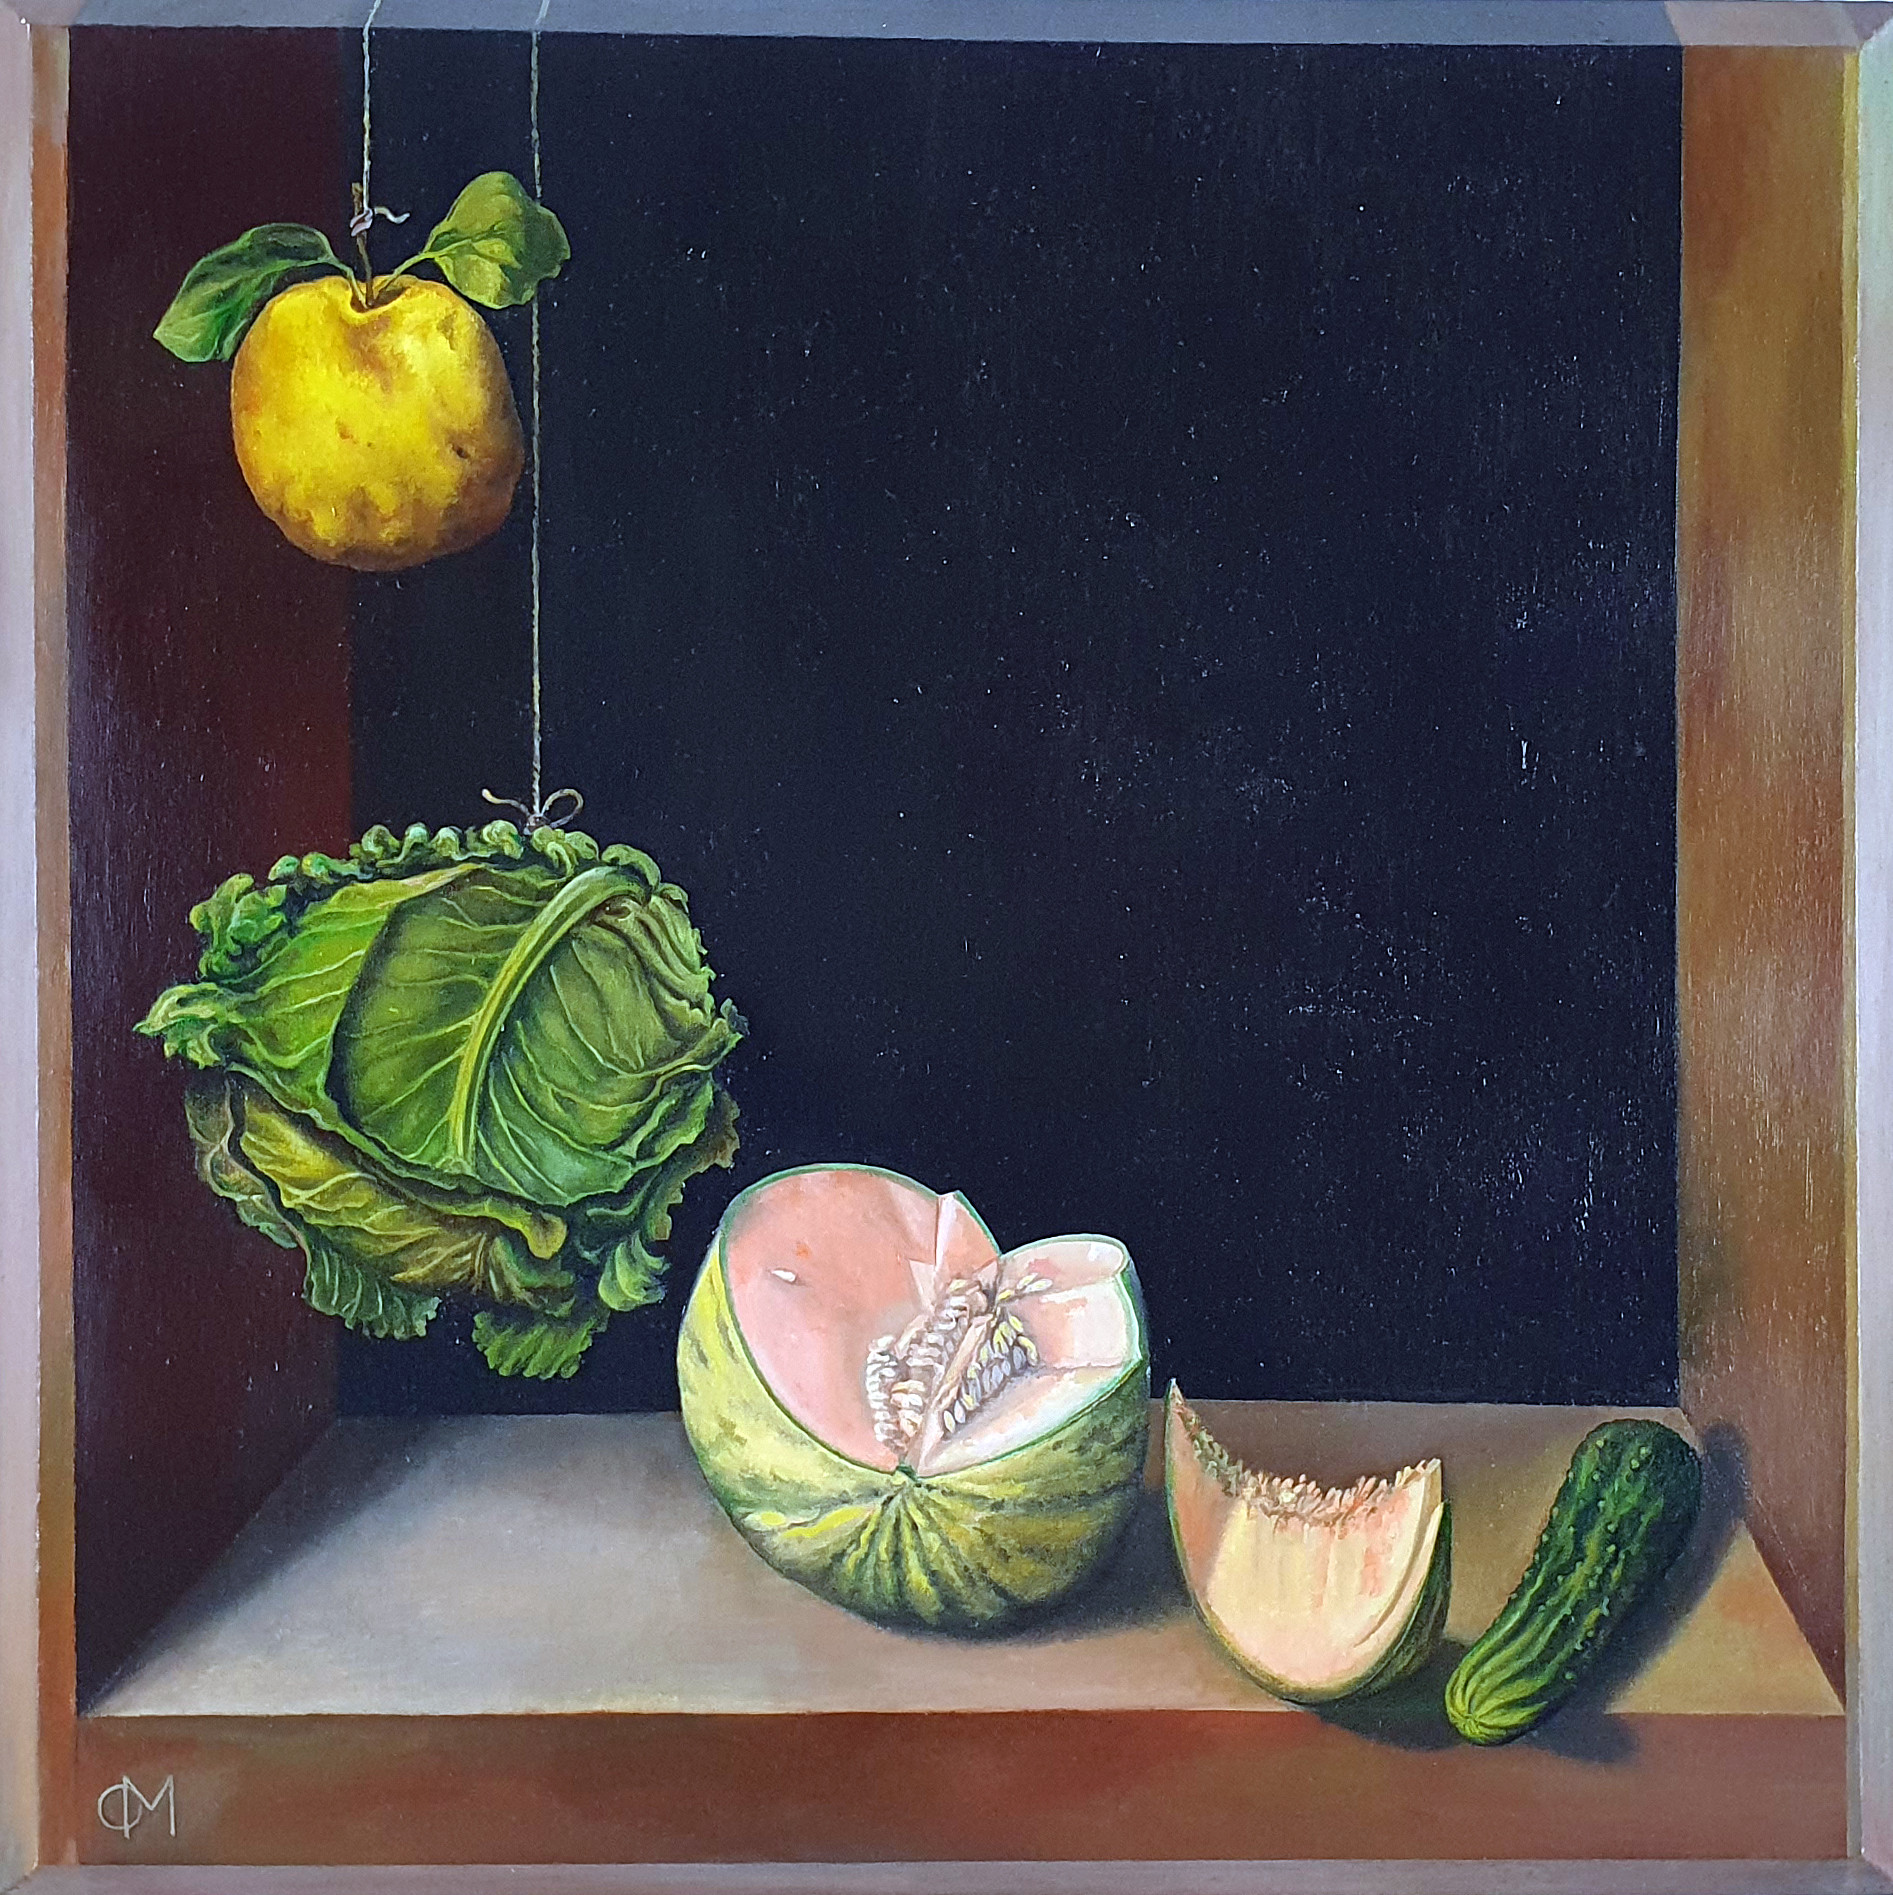 Quince, Cabbage, Melon and Cucumber (1602) by Sánchez Cotán